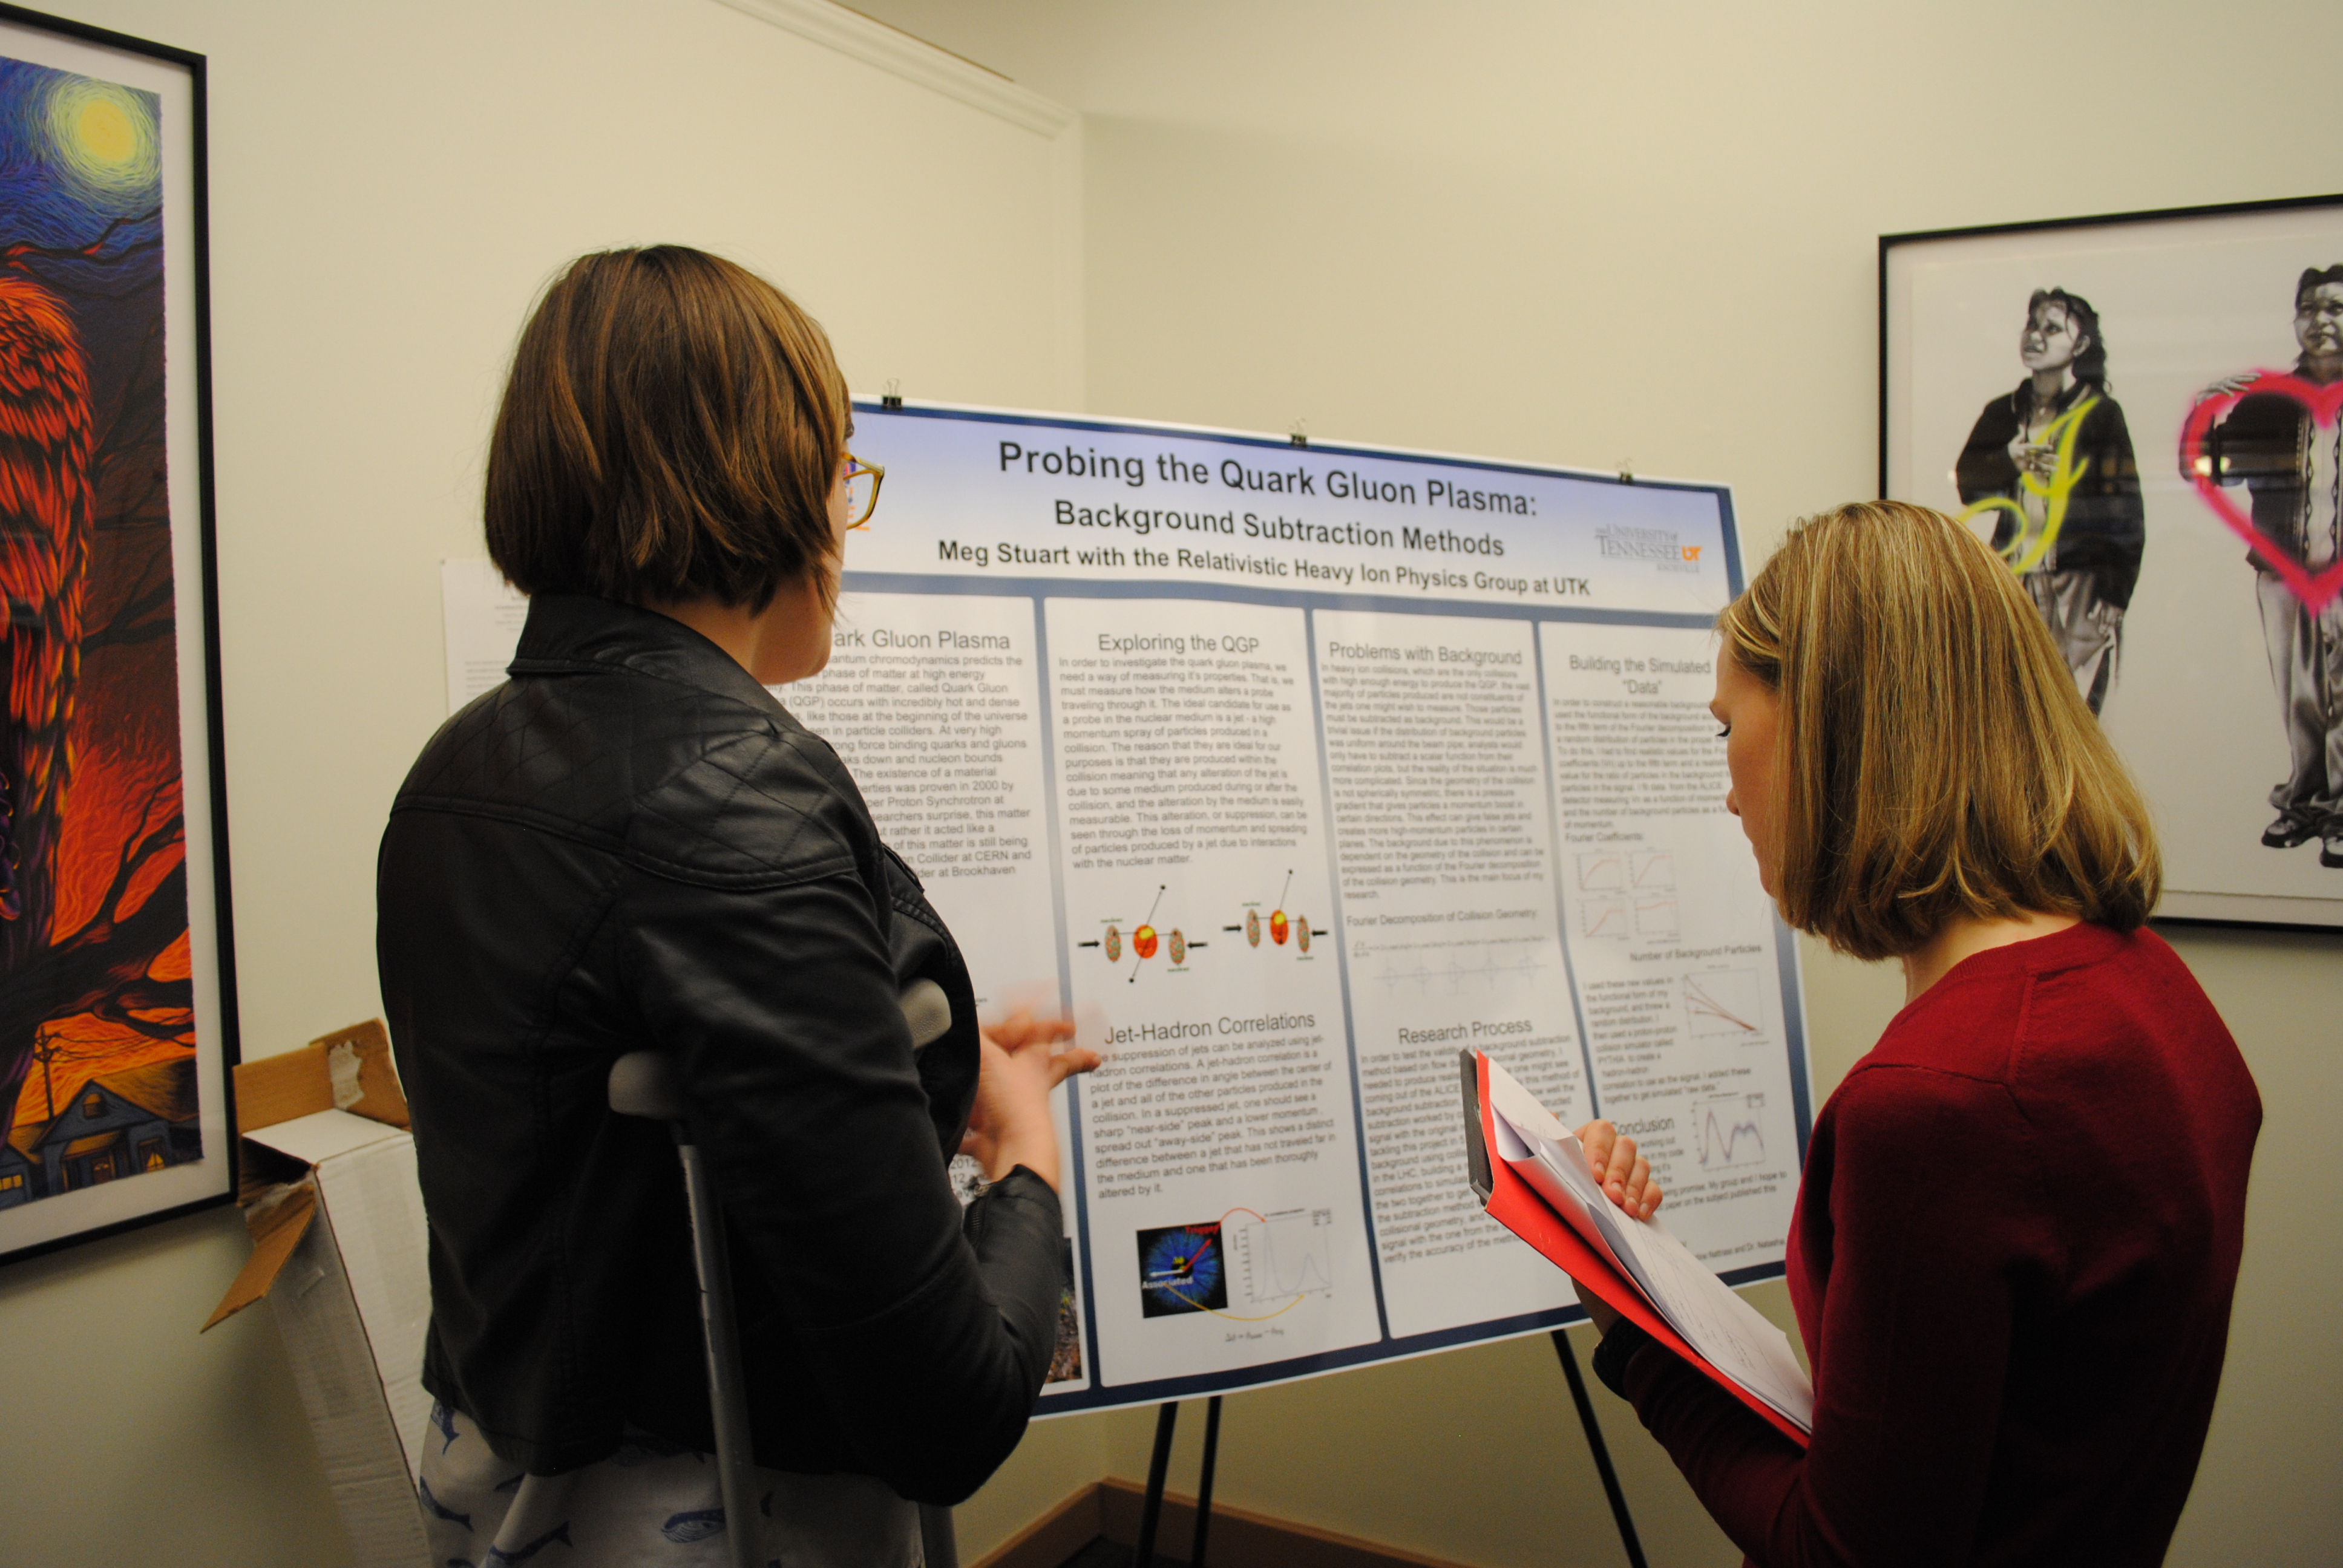 APS Conference for Undergraduate Women in Physics at the Research Triangle, NC (2015)